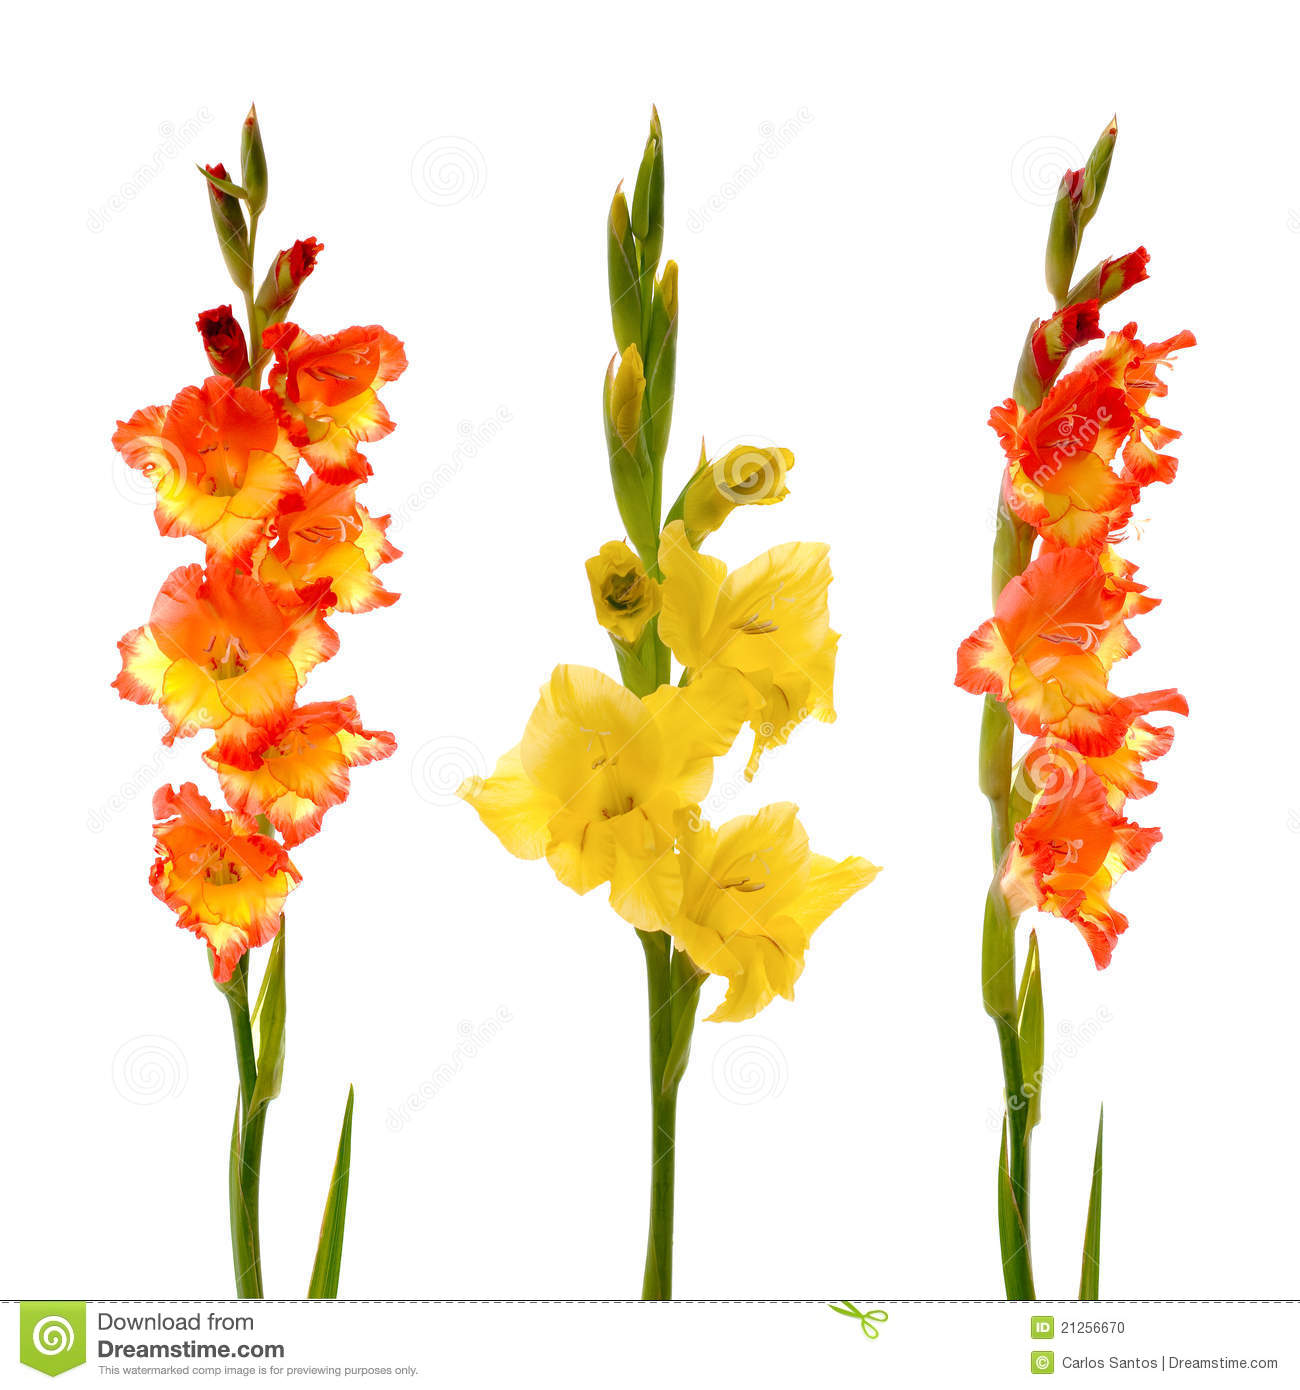 Gladiolus clipart #20, Download drawings